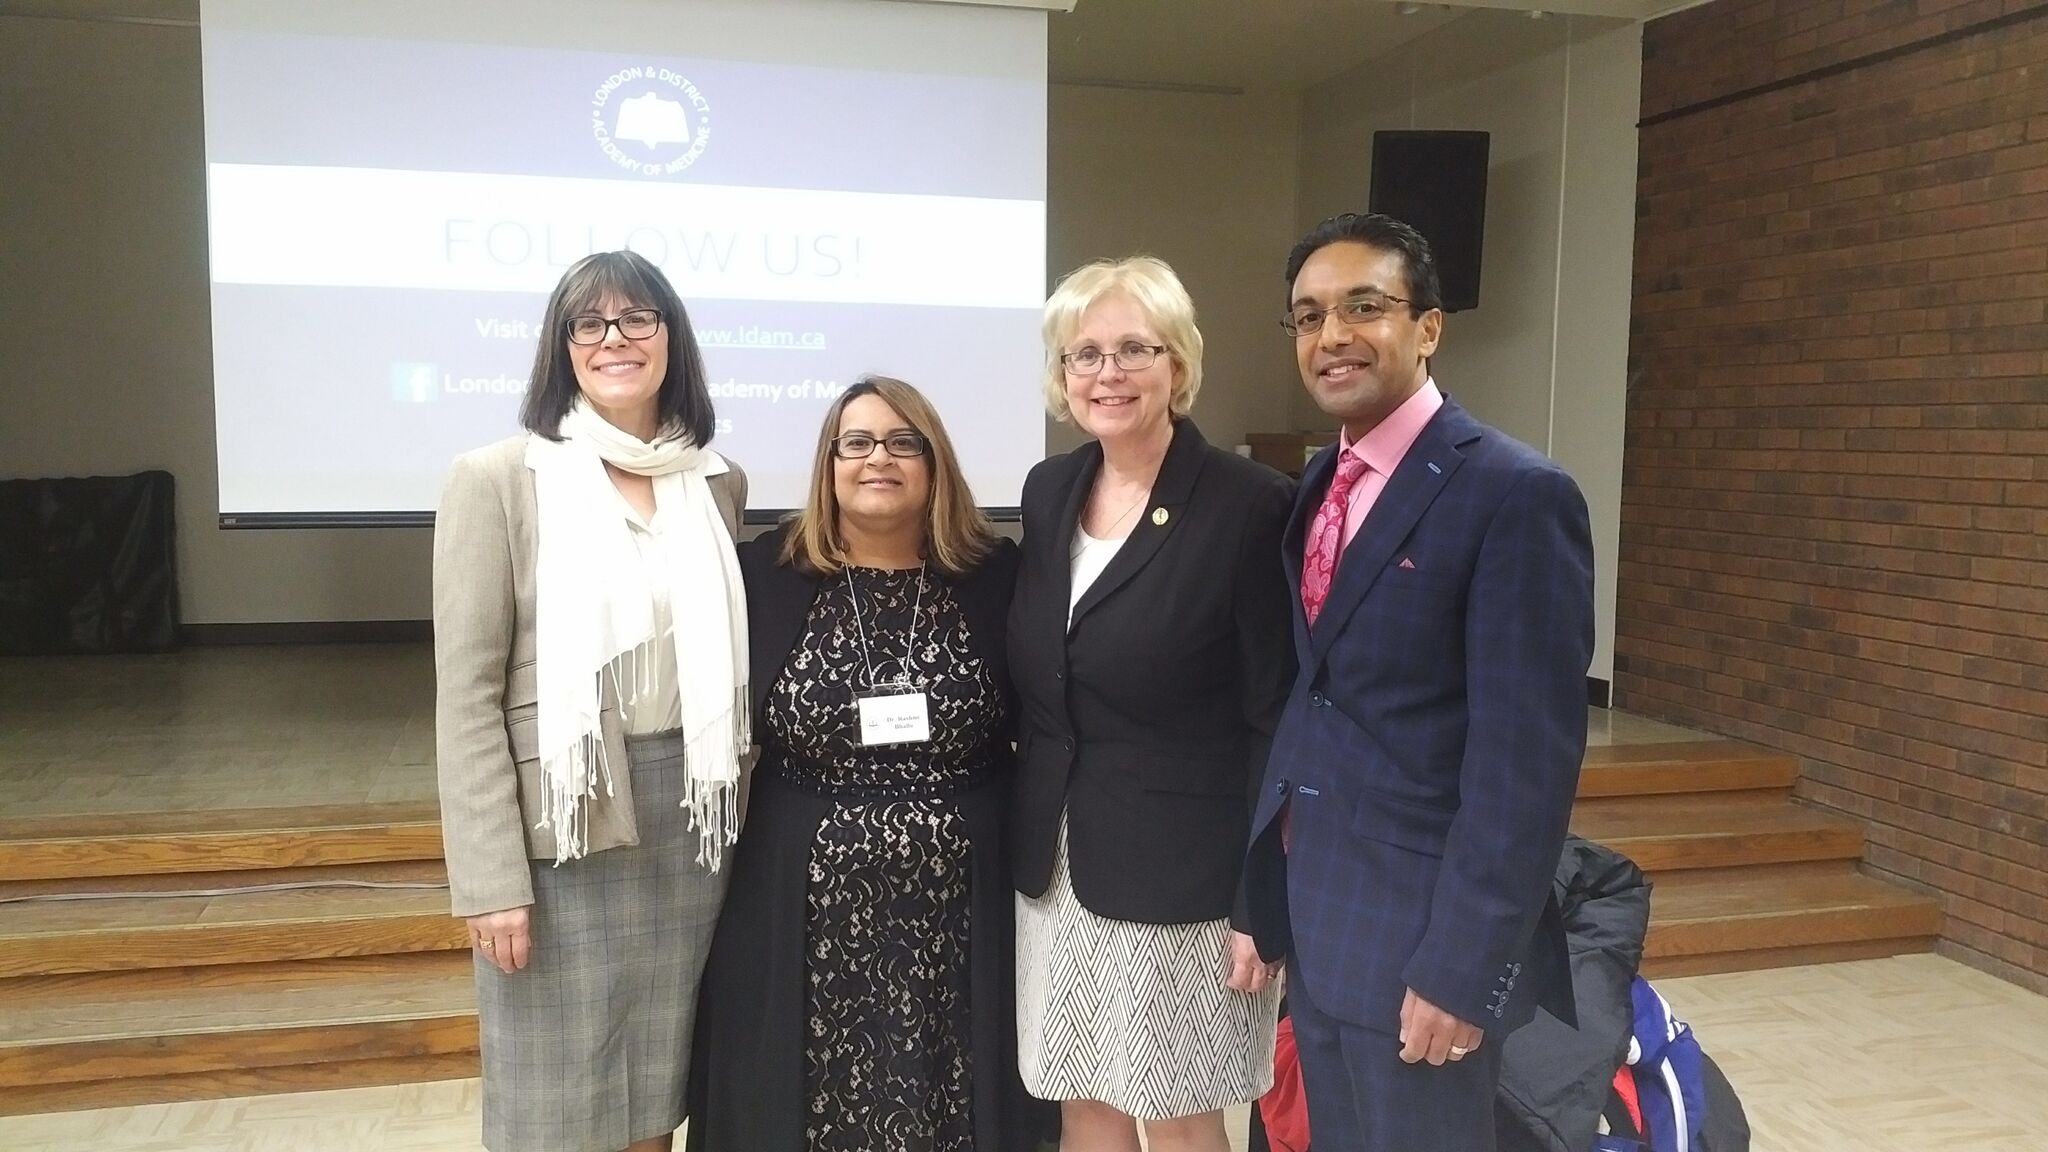 Peggy Sattler, Teresa Armstrong, Jeff Yurek, Sharad and Rashmi at Patient Healthcare Forum - April 12 2018_preview.jpeg